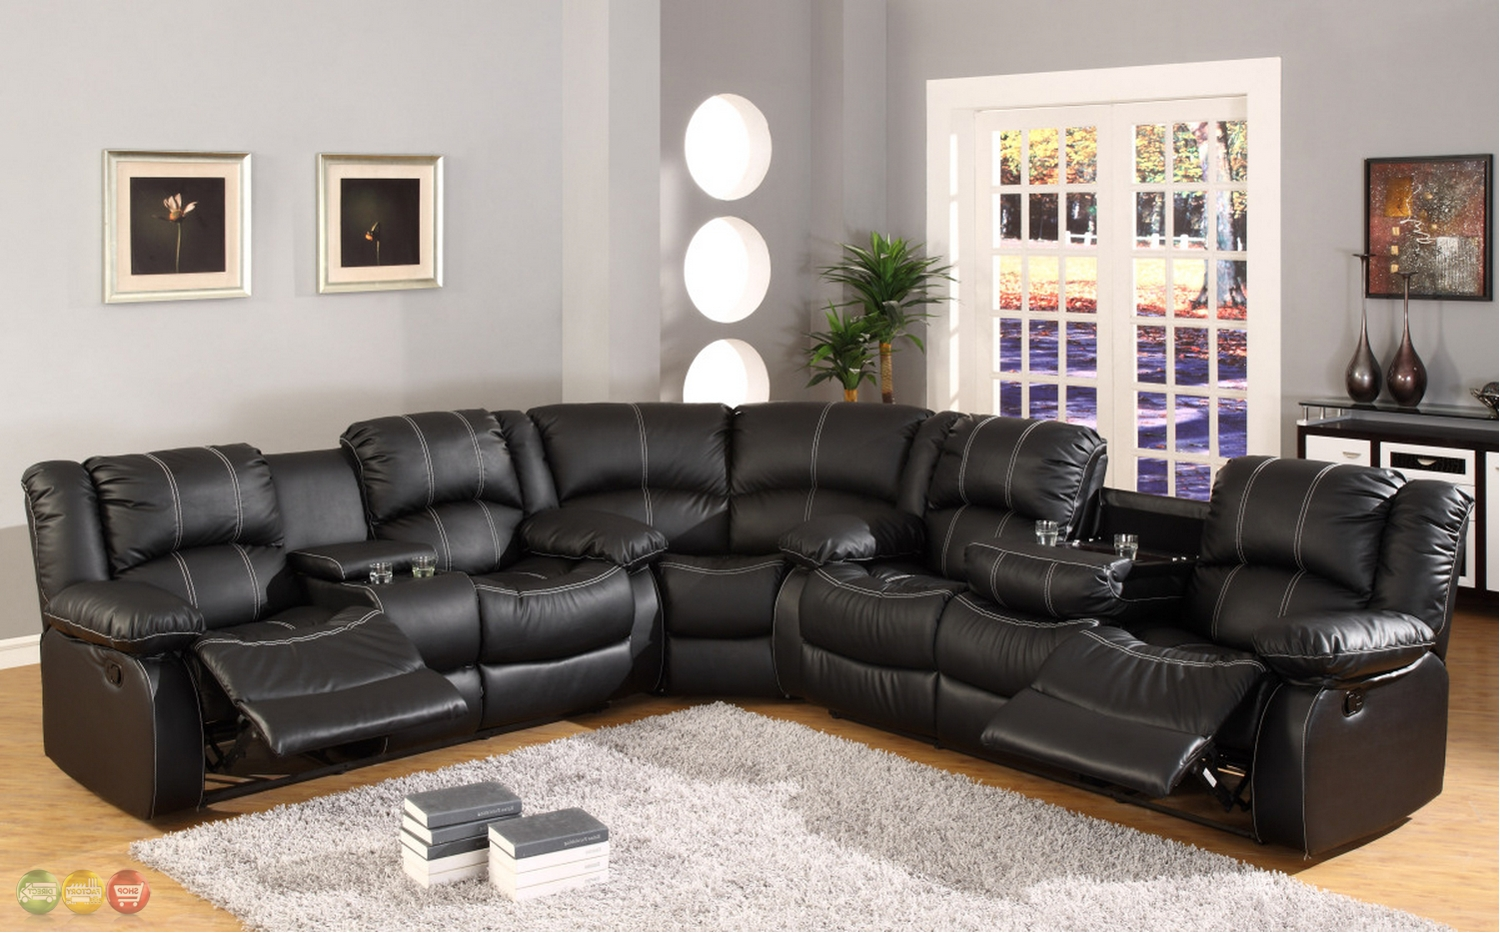 Current Black Faux Leather Reclining Motion Sectional Sofa W/ Storage Inside Sofas With Consoles (View 2 of 15)